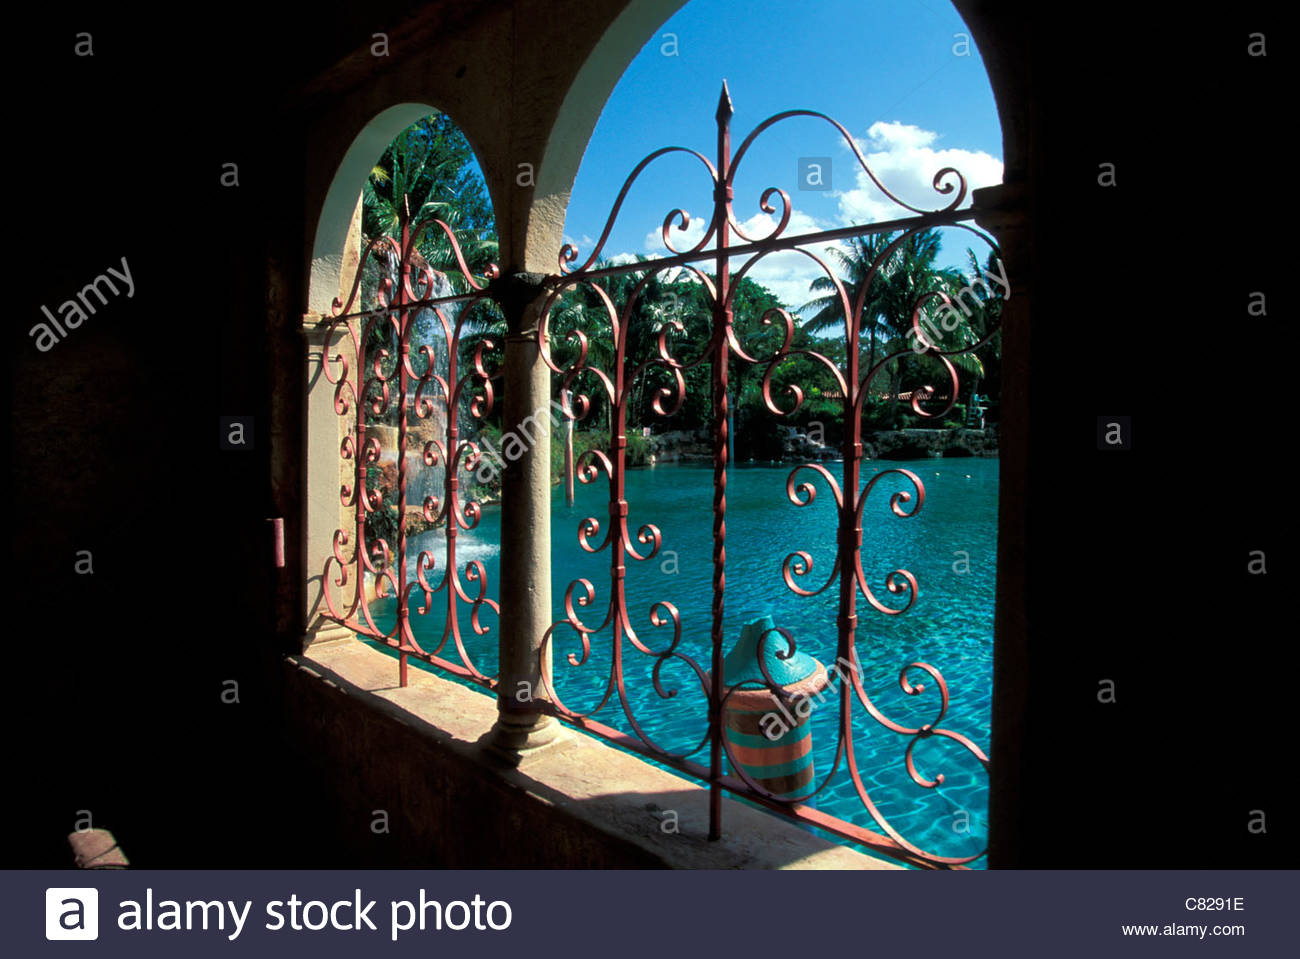 Florida, Miami, Coral Gables. Venetian pool - Stock Image